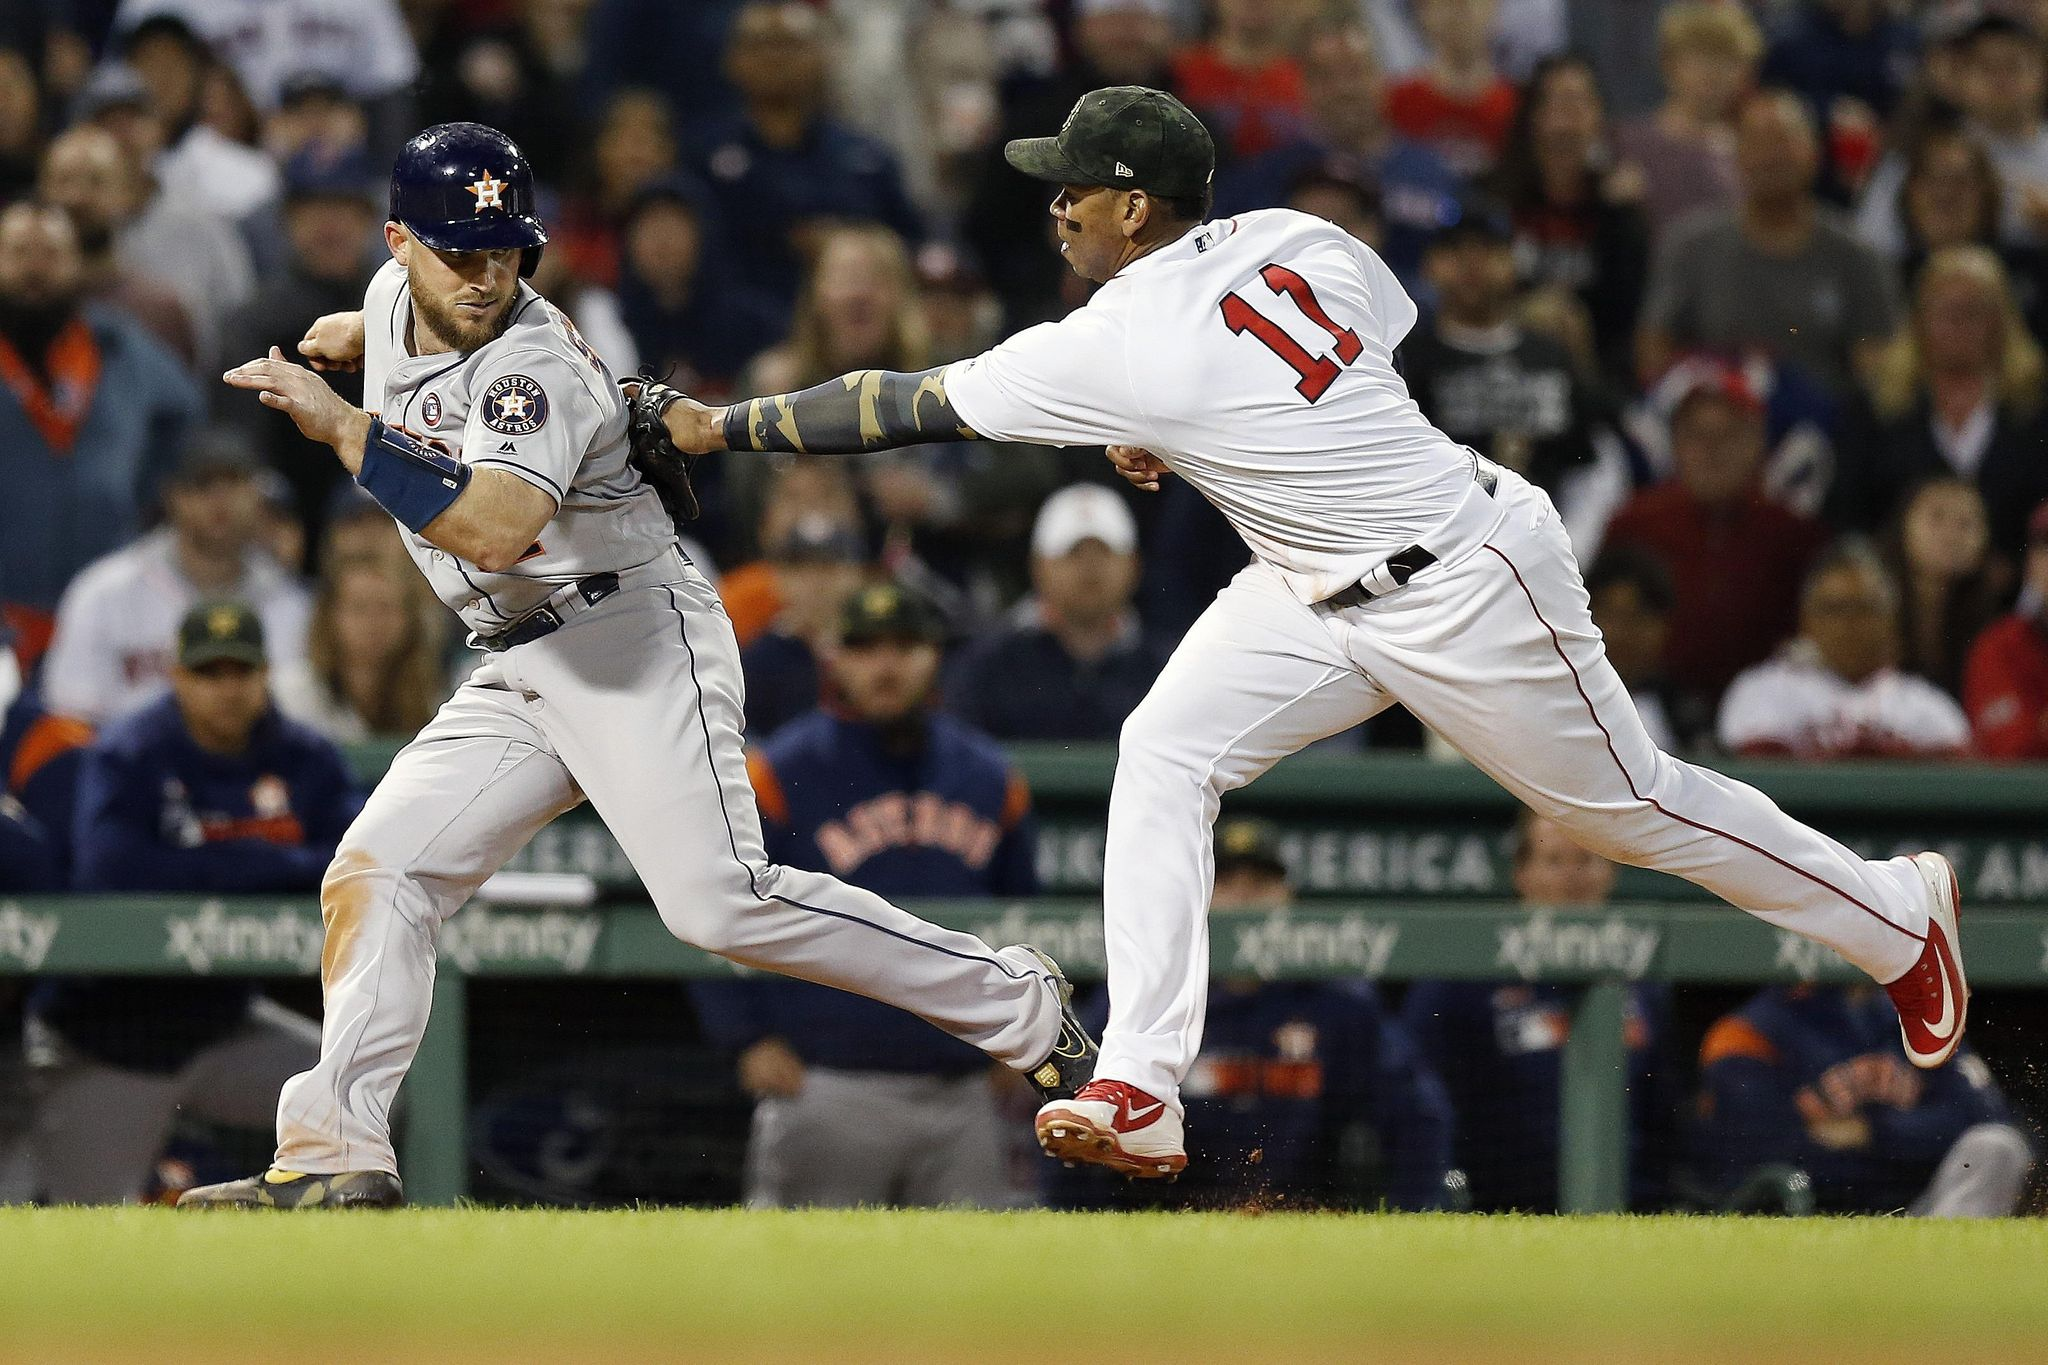 Astros_red_sox_baseball_18334_s2048x1365